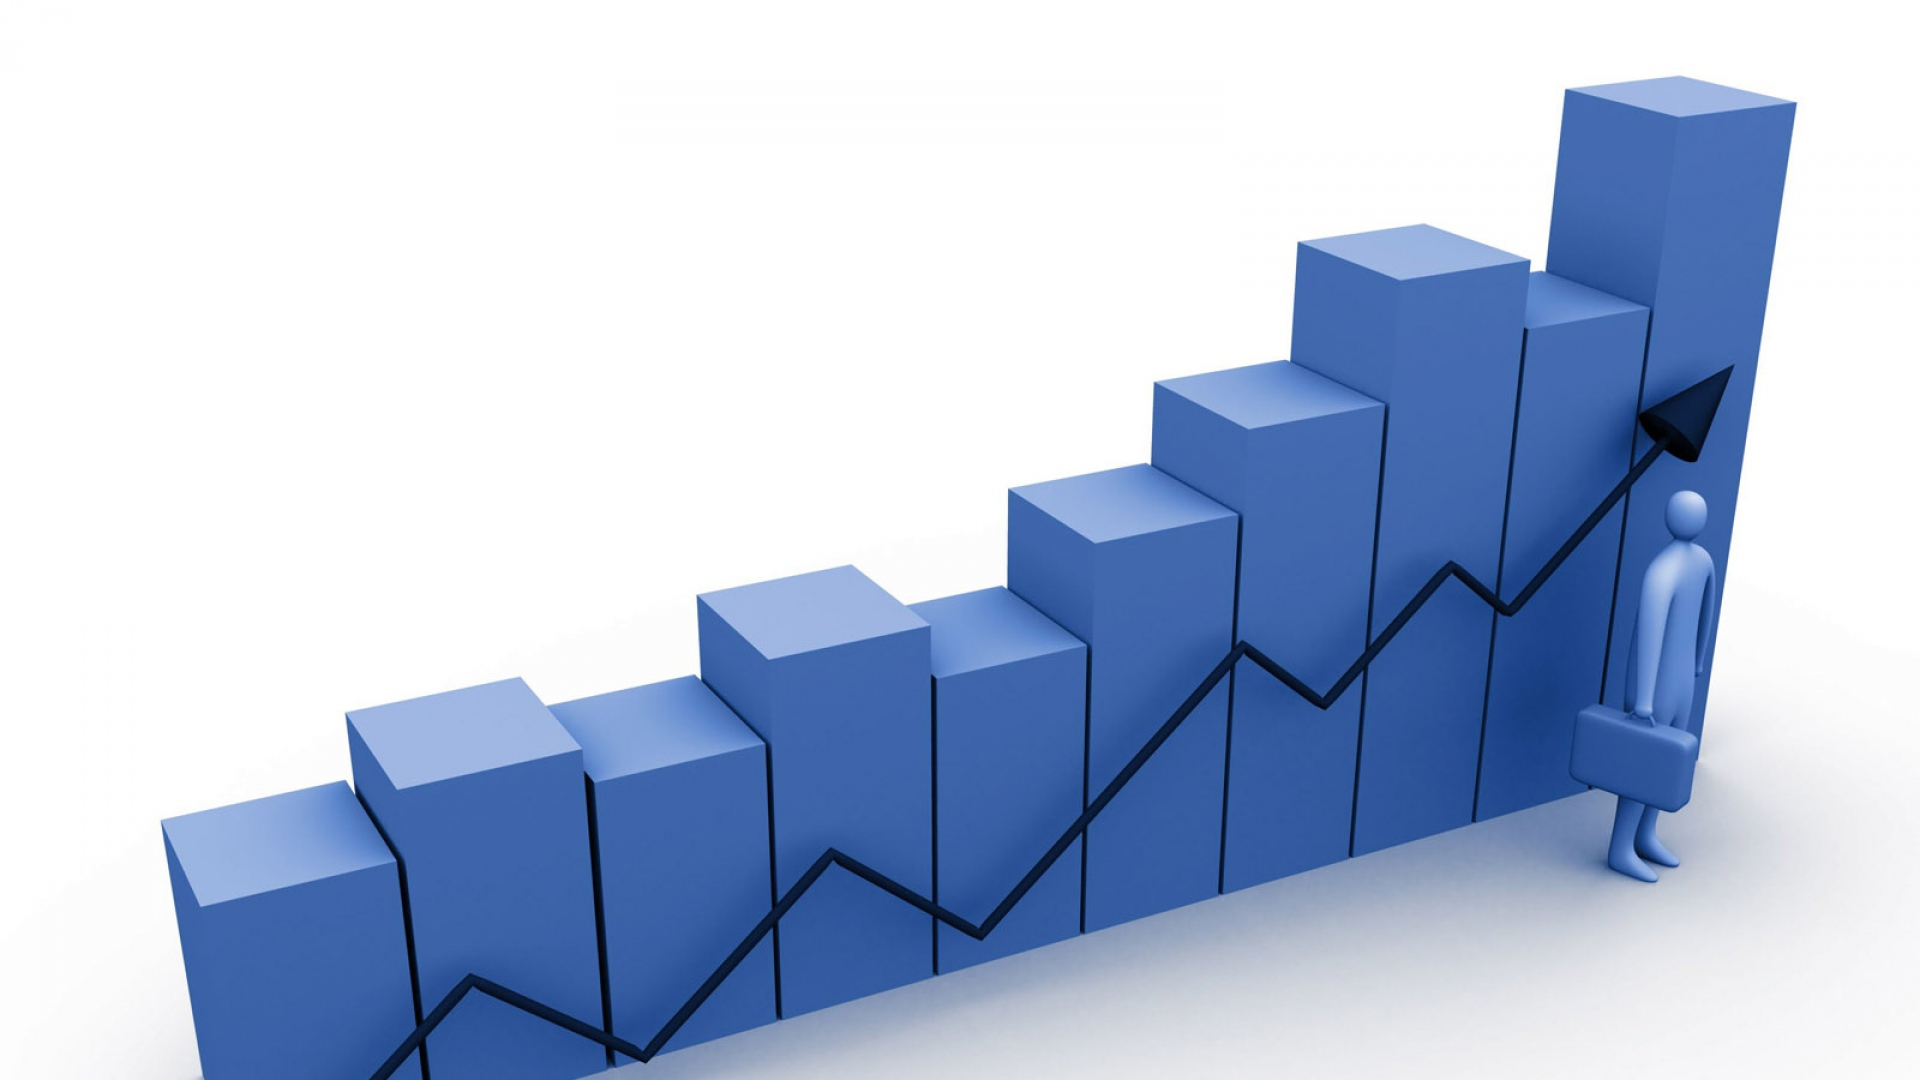 Chart clipart growth. Download wallpaper x growing